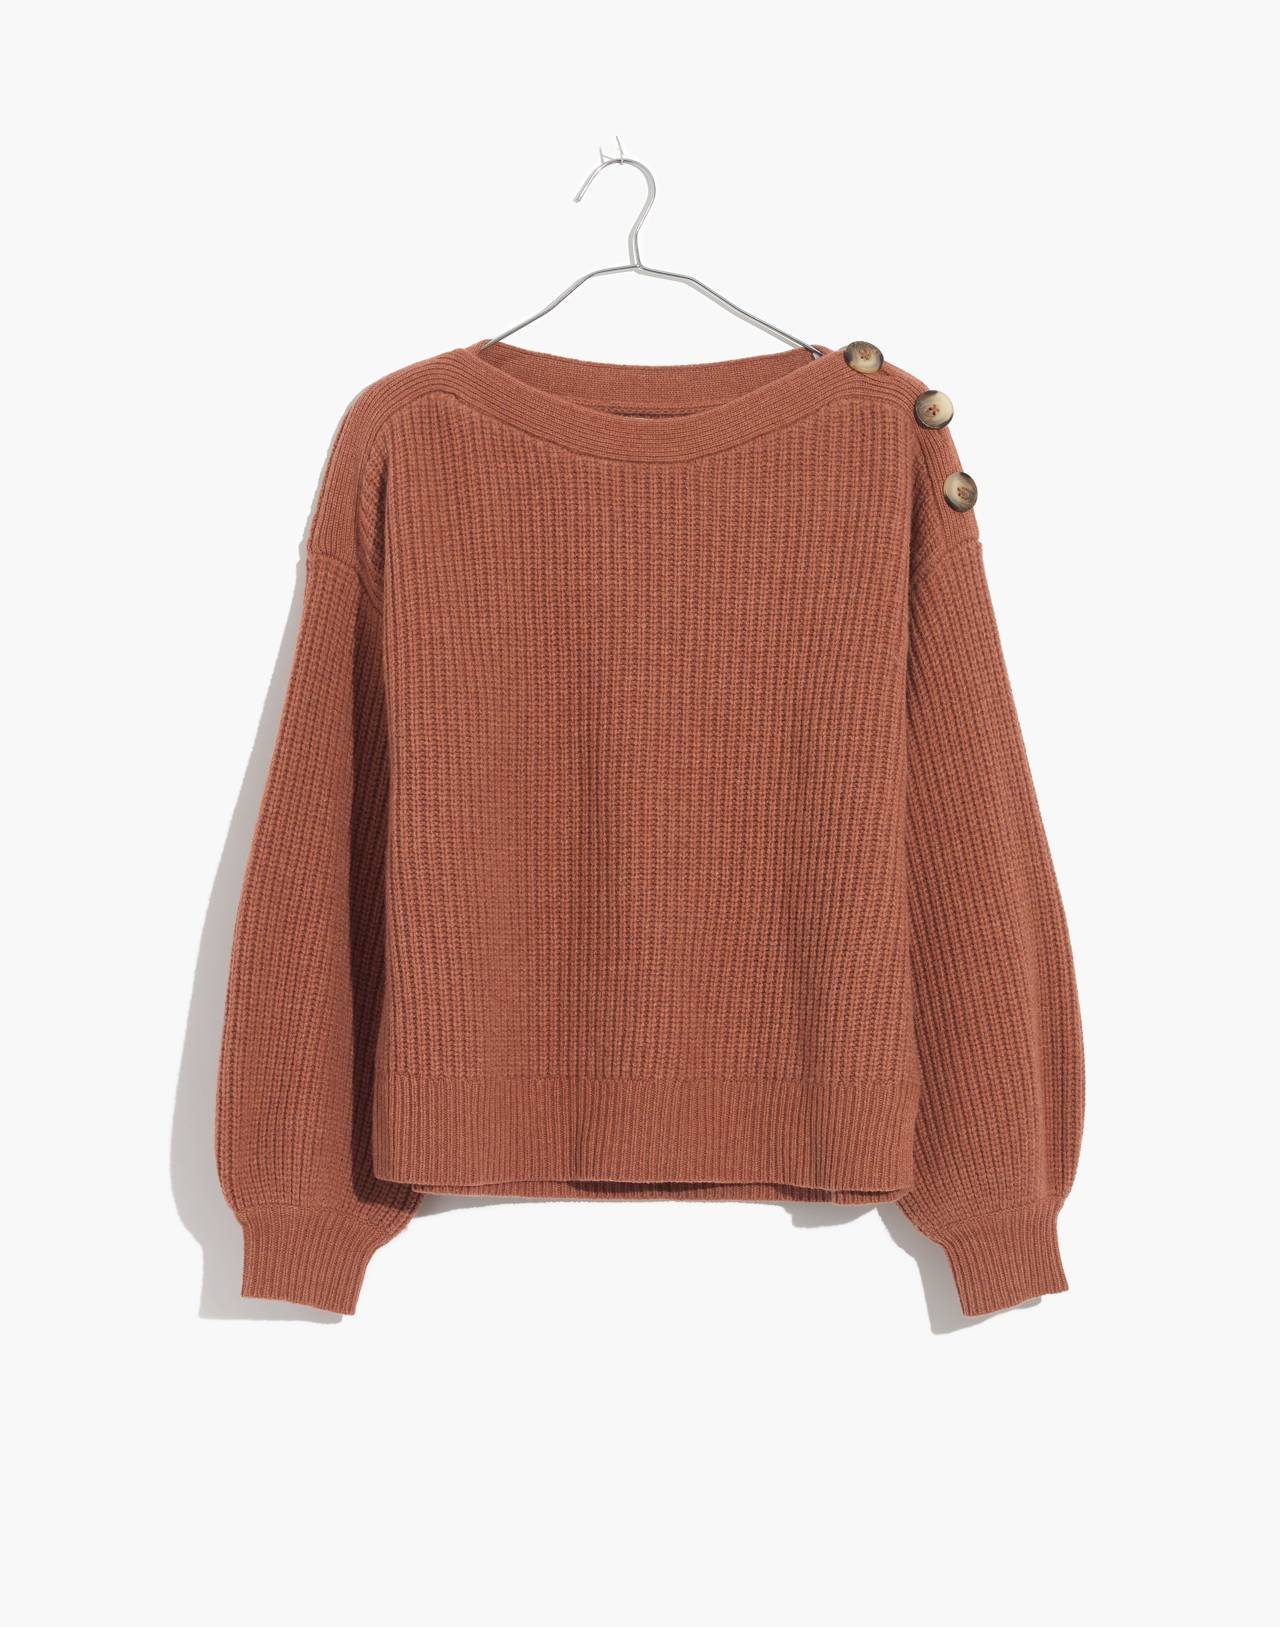 Boatneck Button-Shoulder Sweater in heather earth image 4